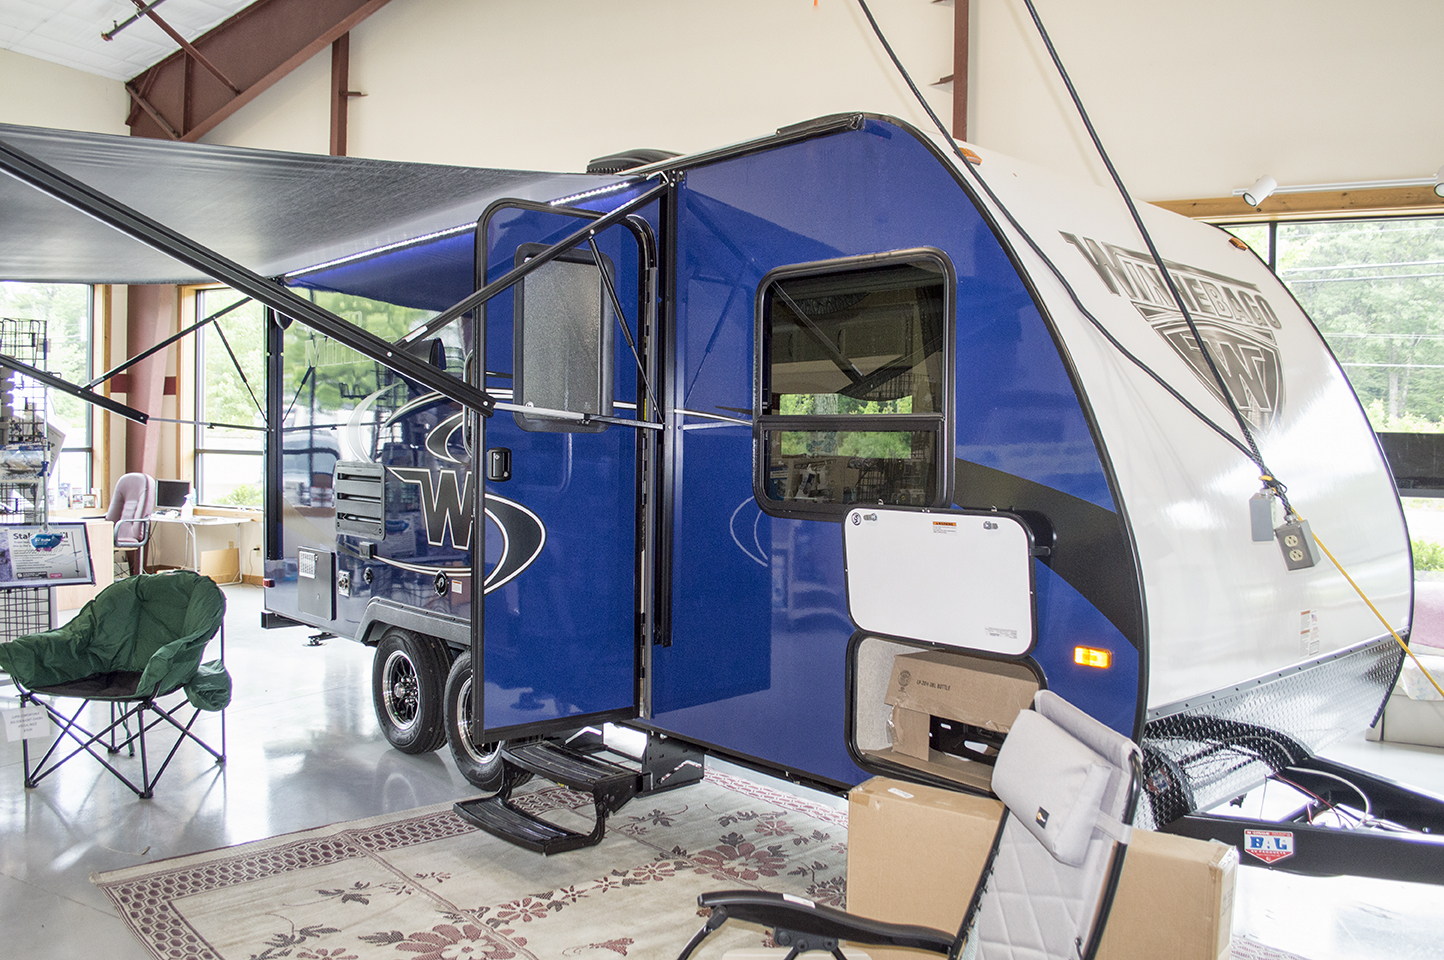 Lightweight, aerodynamic  Just 3800 lbs GVWR  Slideout, Awning, Great Kitchen  Full Wet Bath, And it's Blue!    MSRP $24,021  Special Price $18,900